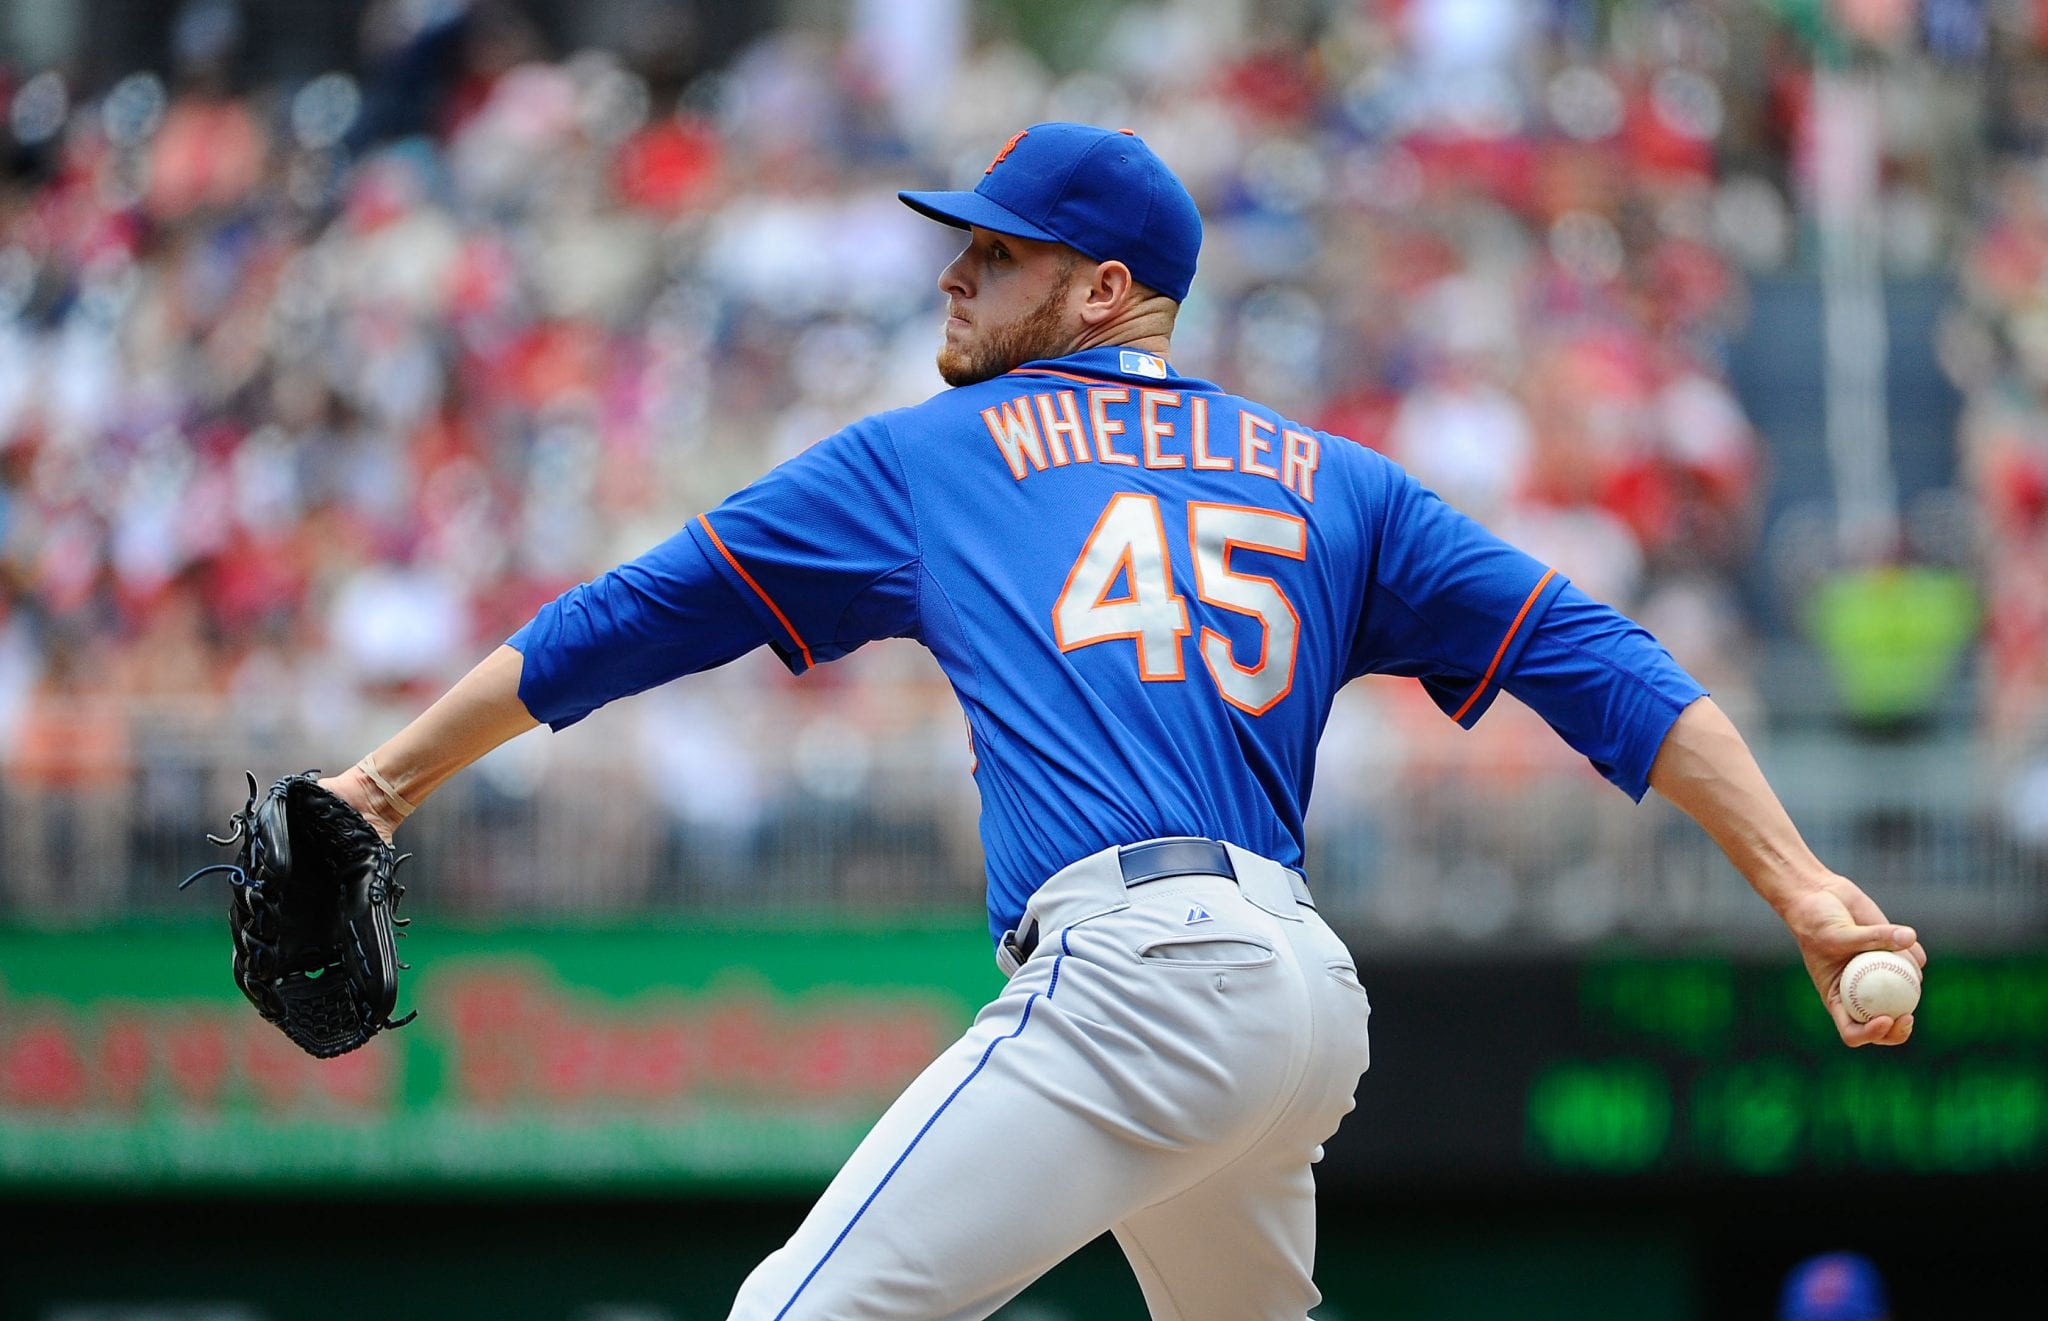 New York Yankees, New York Mets, Zack Wheeler